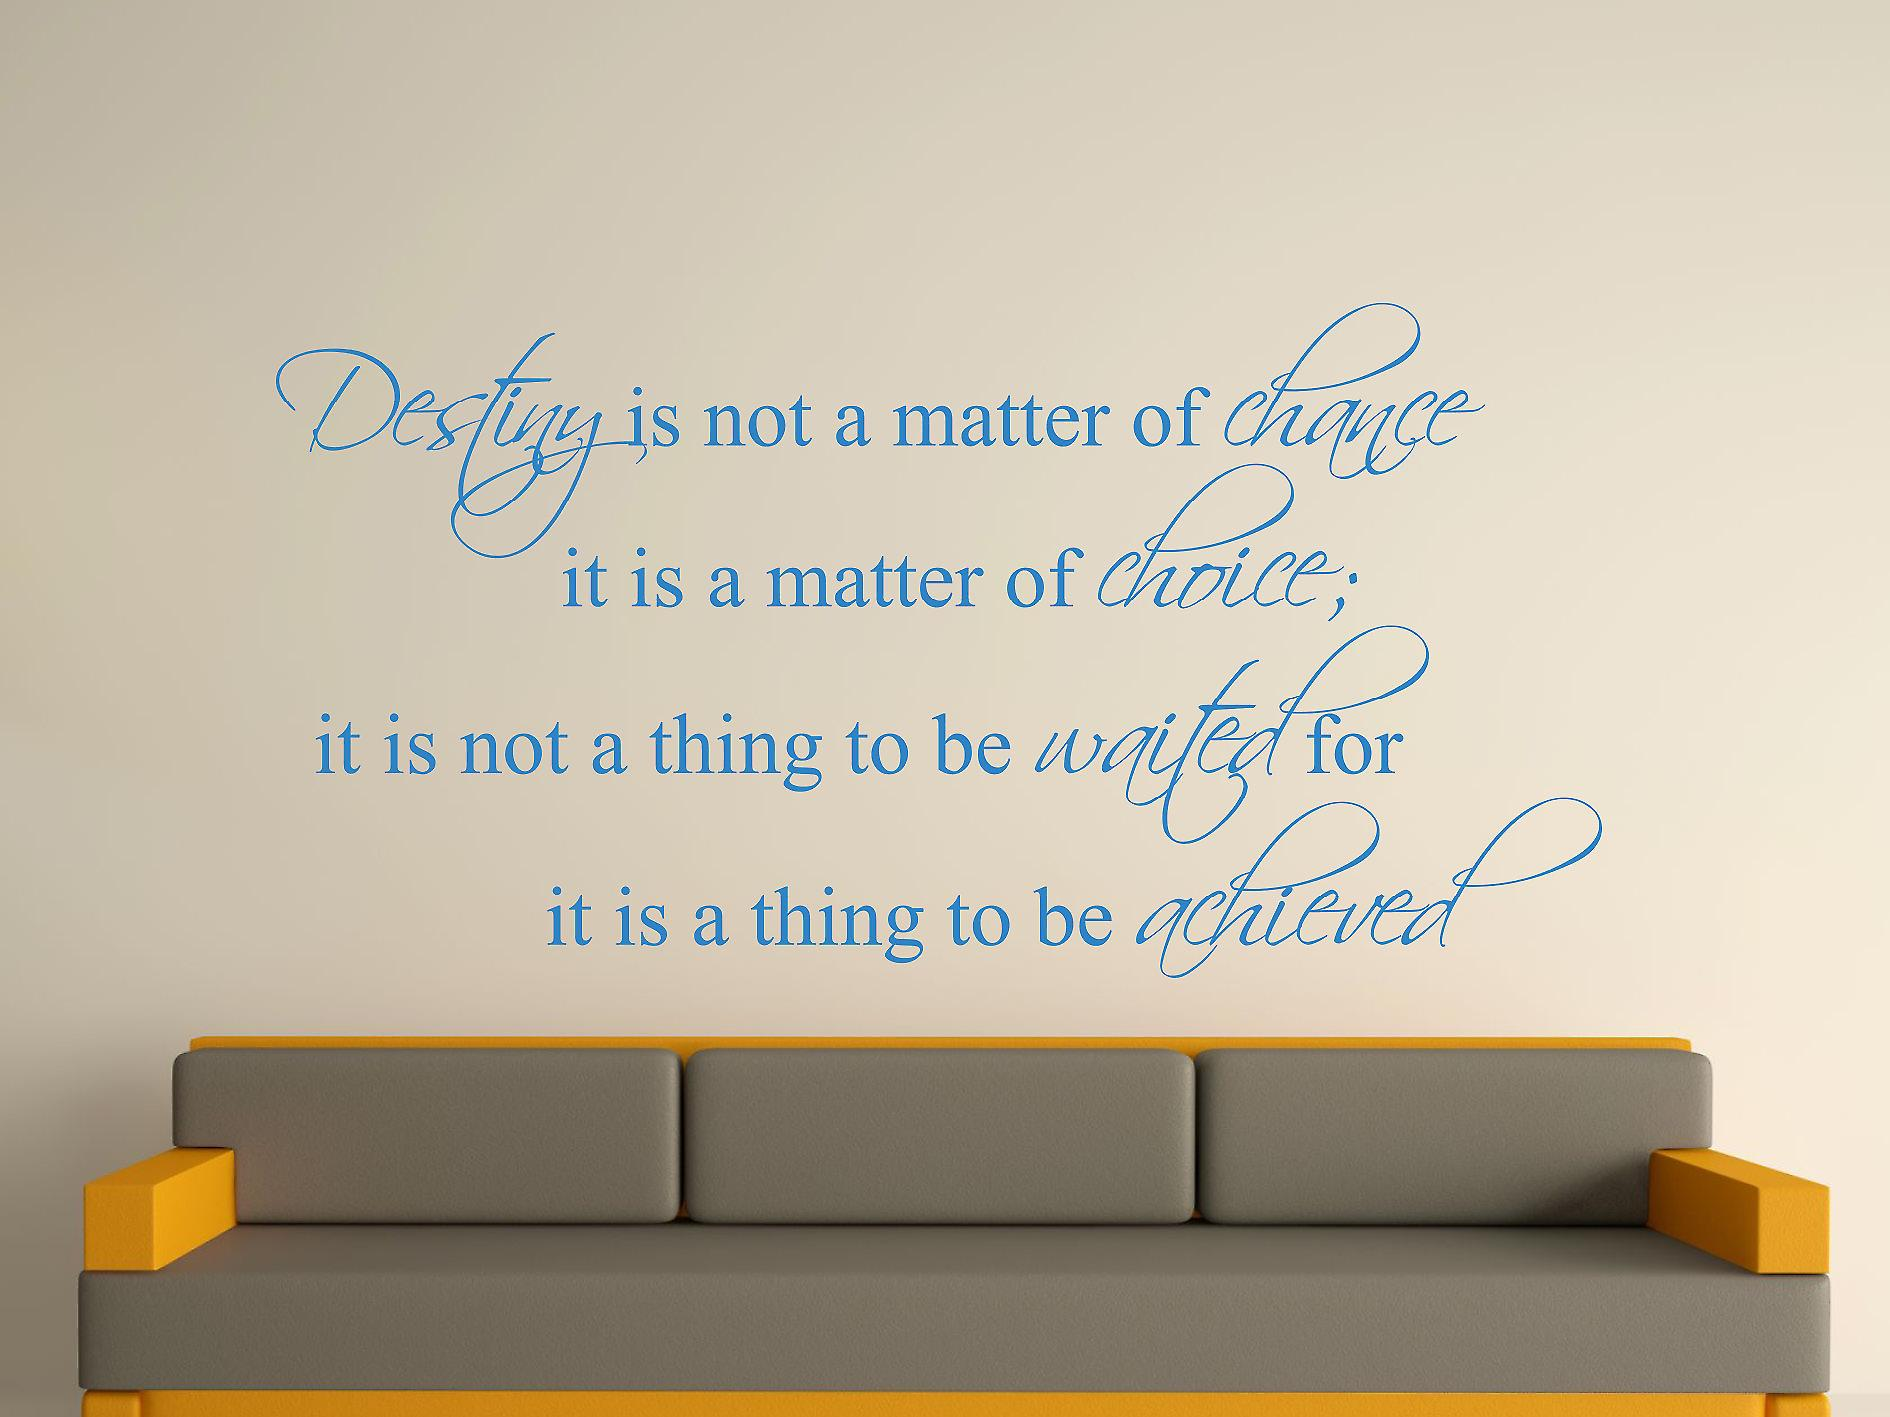 Destiny Is Not A Matter of Chance Wall Art Sticker - Olympic Blue